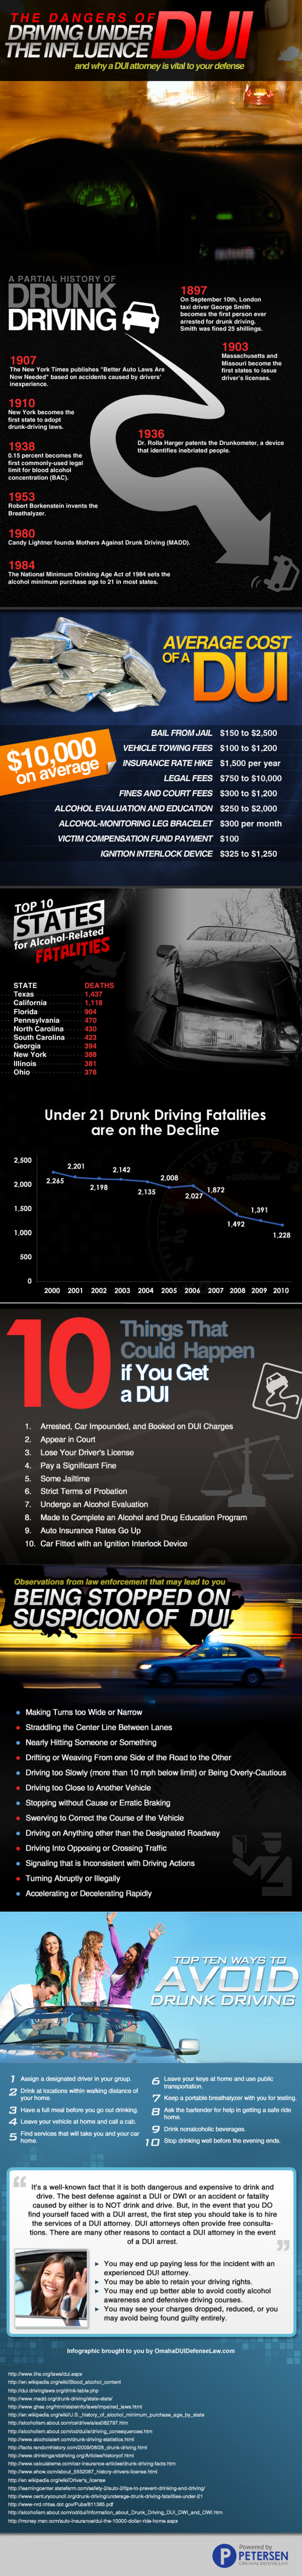 Dangers of Driving Under the Influence Infographic